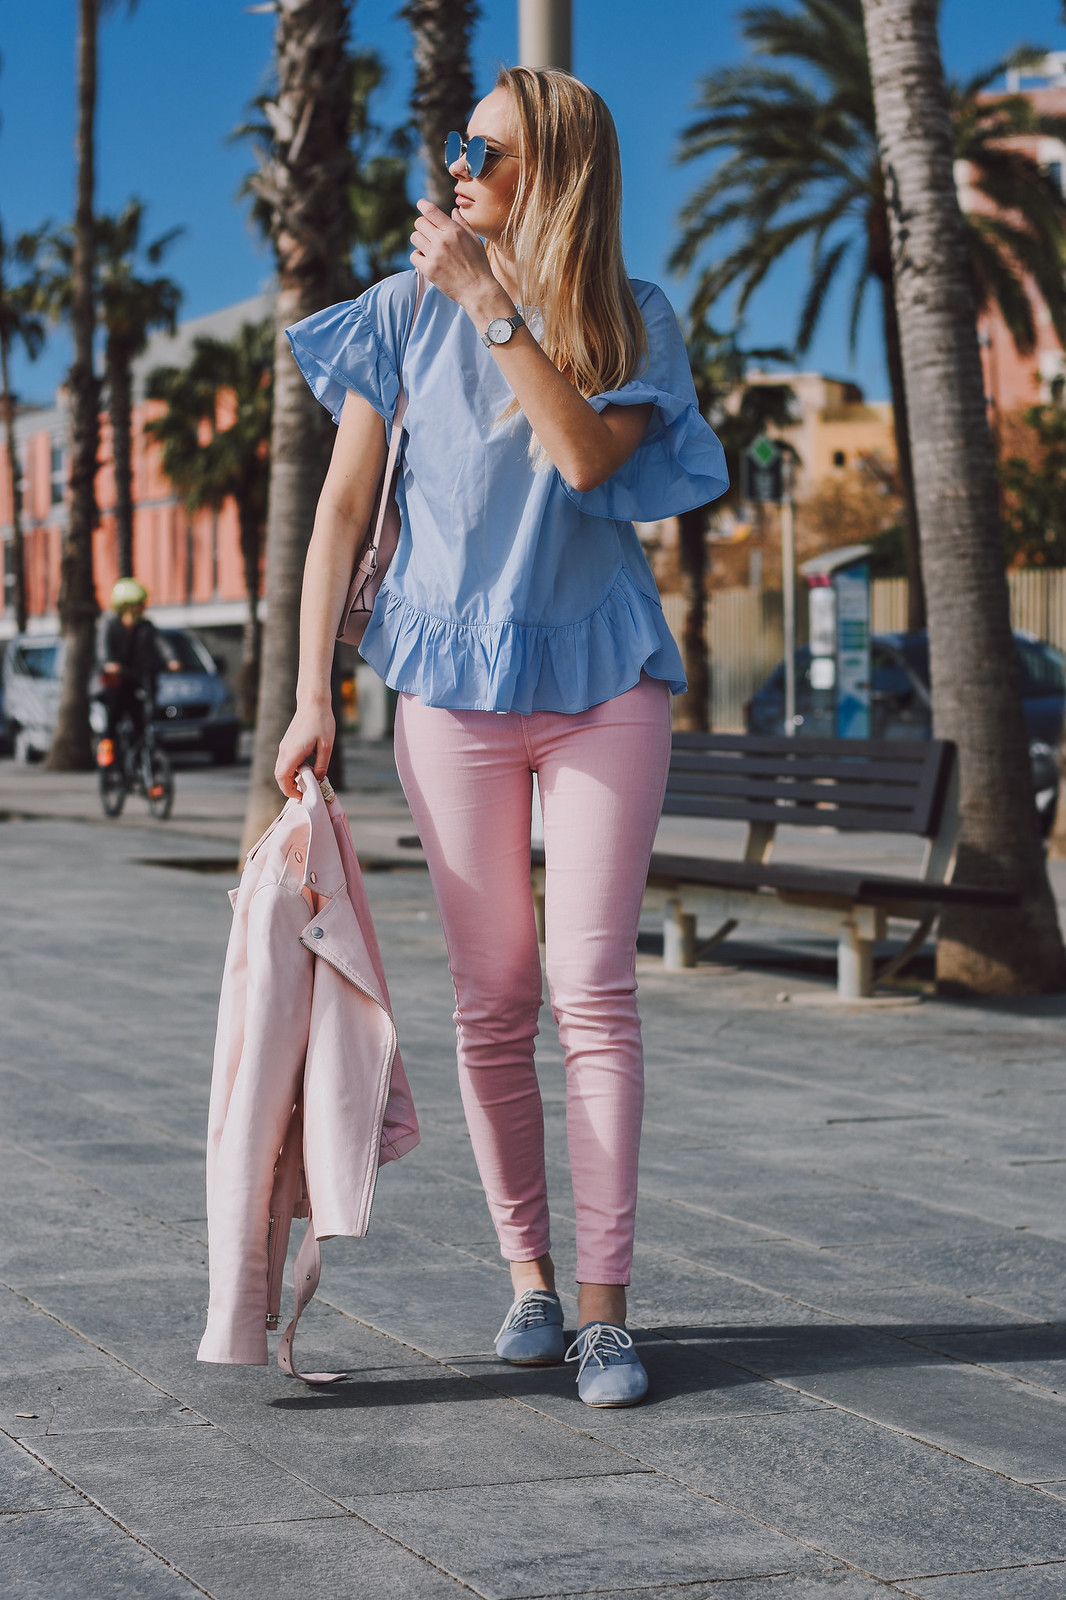 Pastel color outfit inspiration